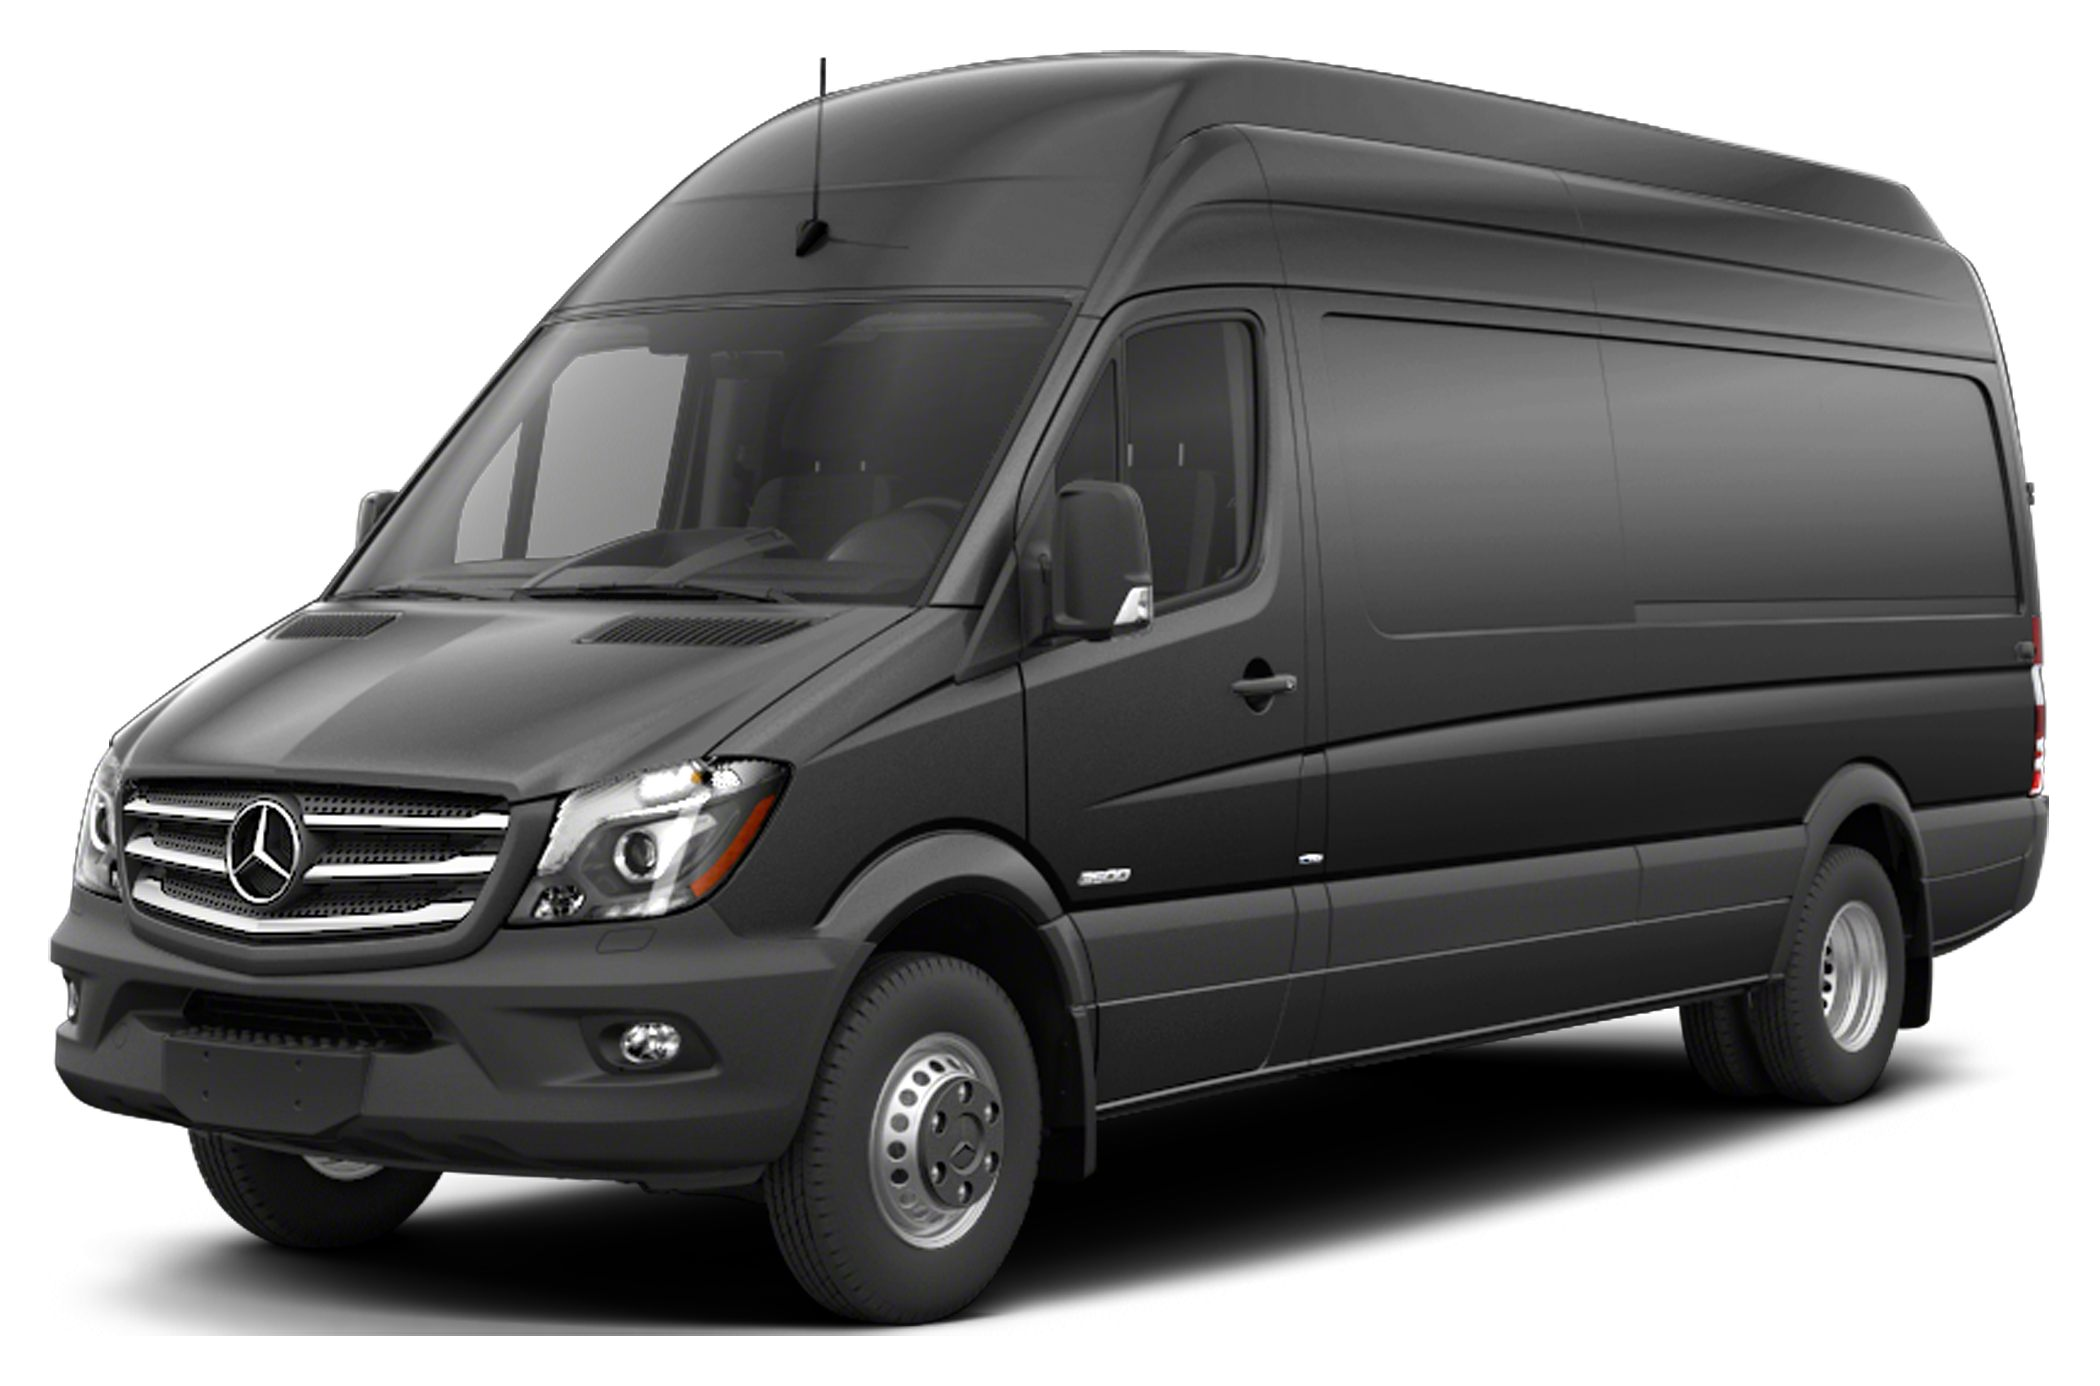 Mercedes benz sprinter 3500xd prices reviews and new for Mercedes benz sprinter price list